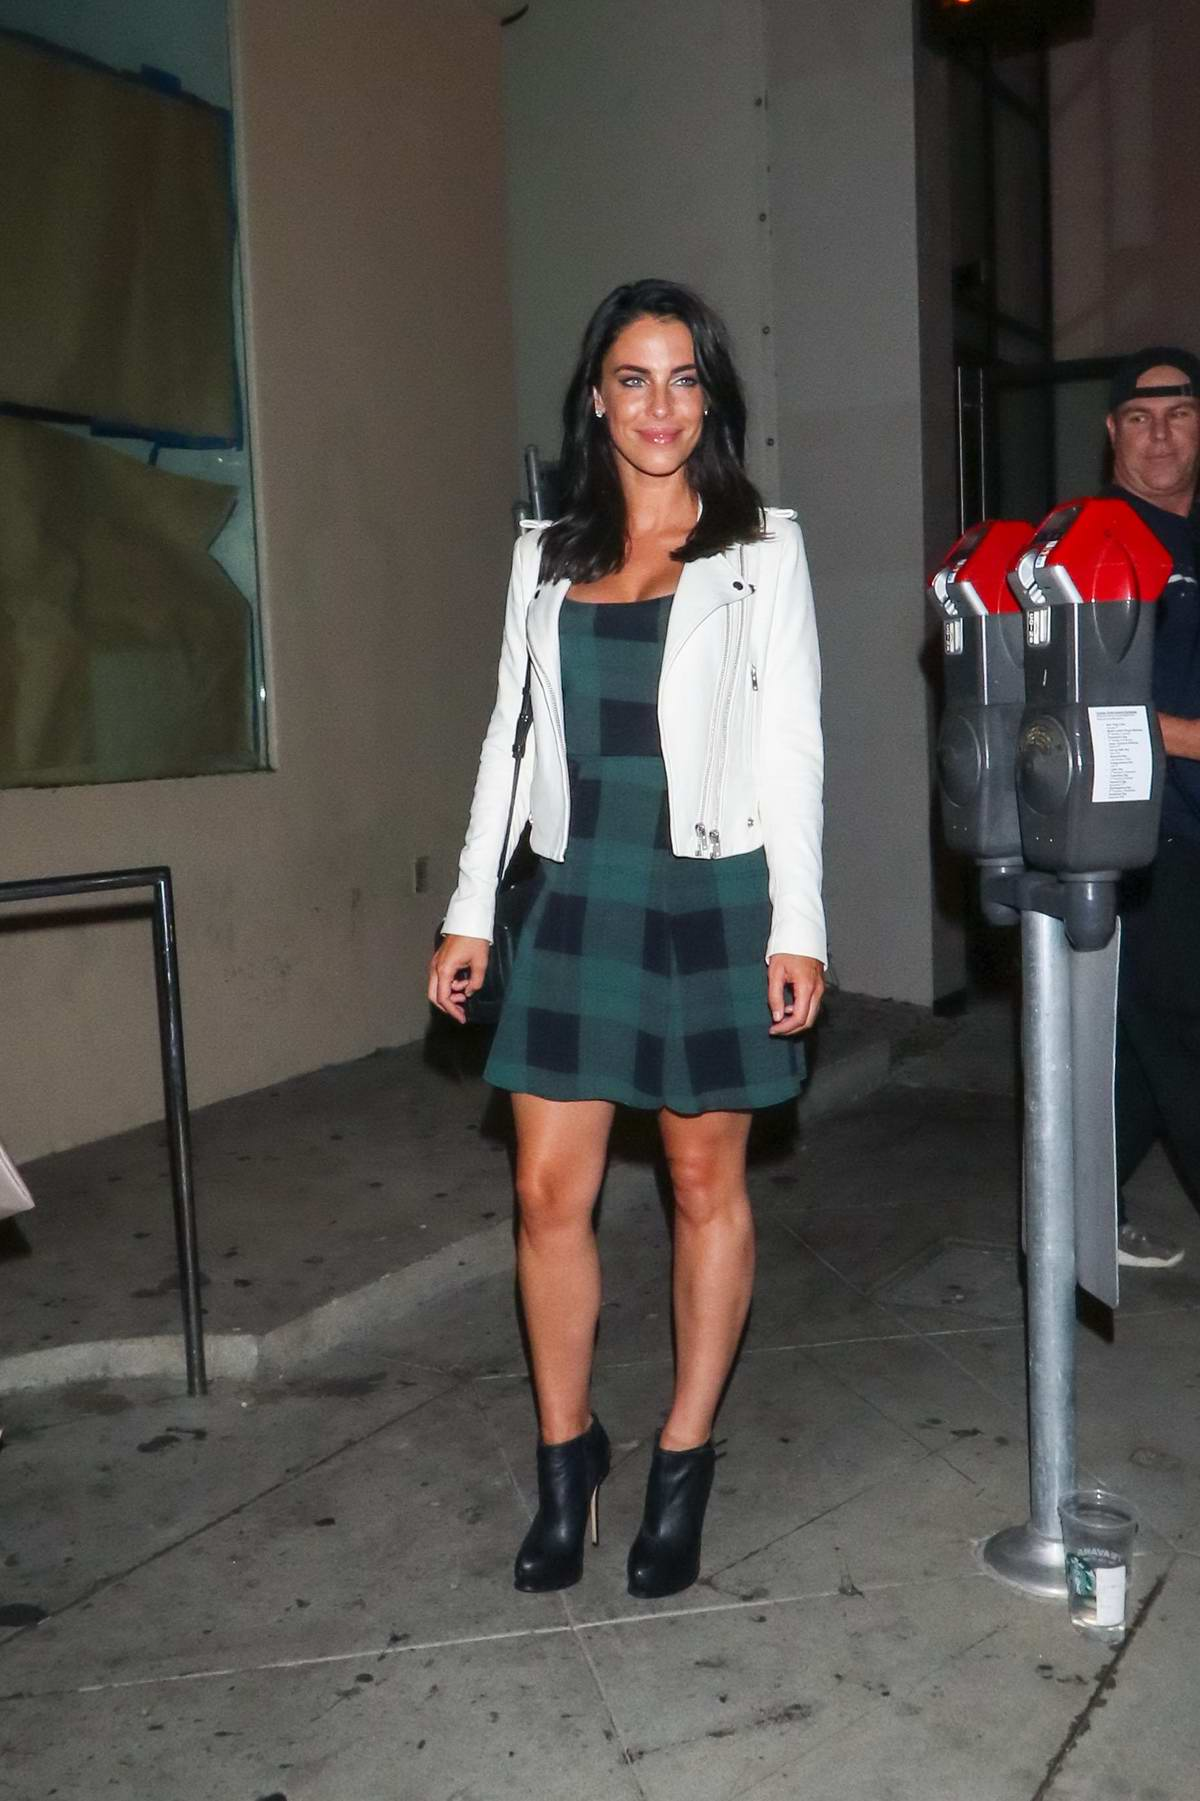 Jessica Lowndes wore a green plaid minidress as she leaves Catch Restaurant in West Hollywood, Los Angeles